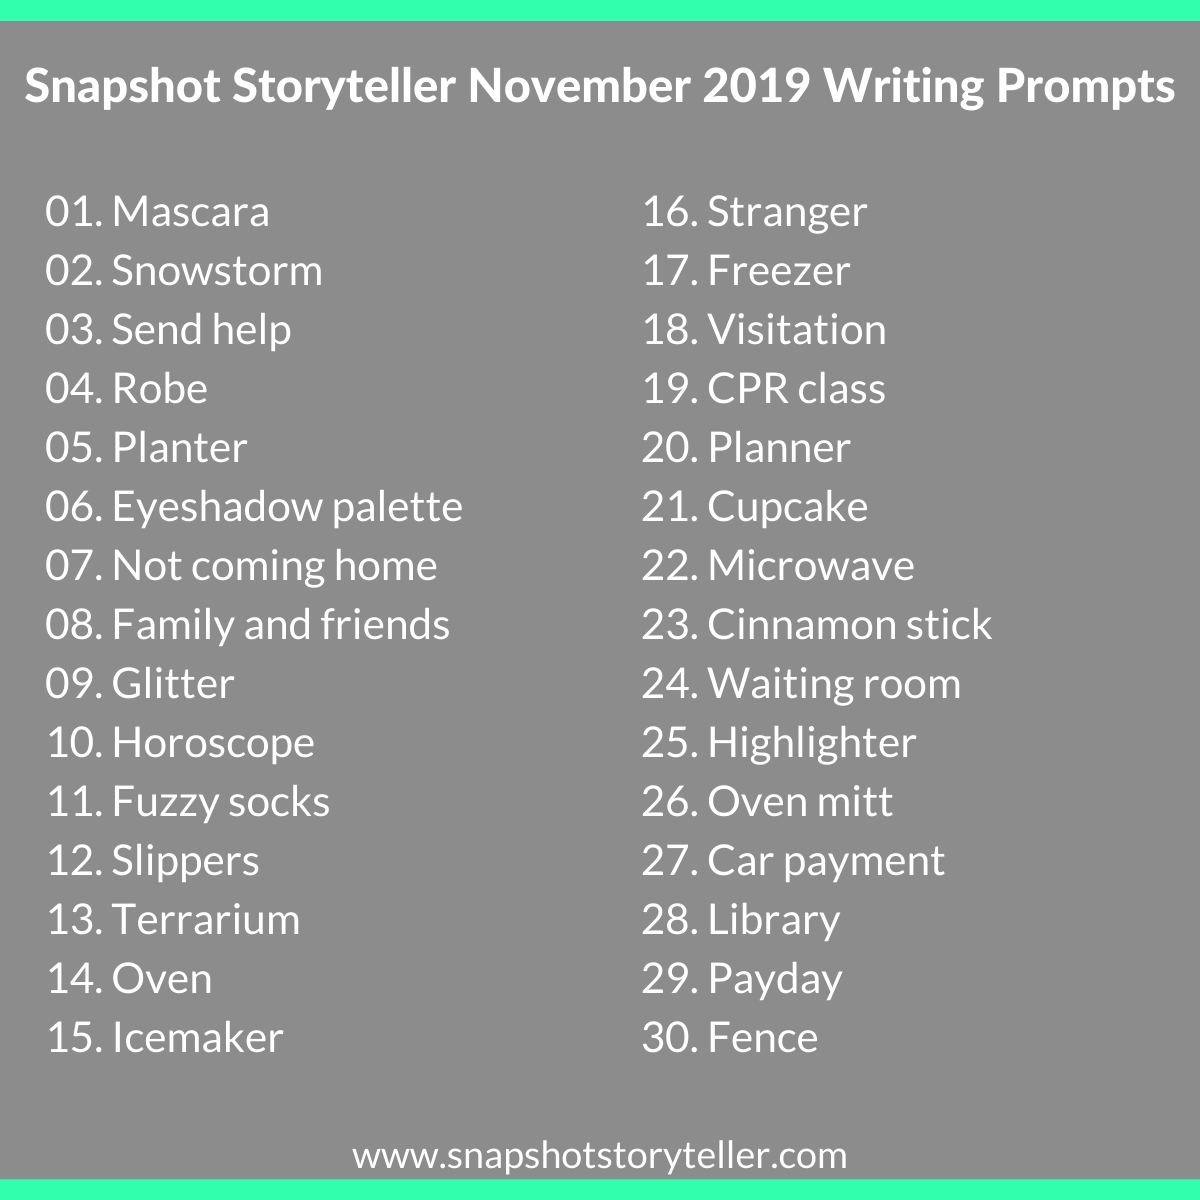 Snapshot Storyteller | November 2019 Writing Prompts | www.snapshotstoryteller.com #amwriting #snapshotstoryteller #creativestoryteller #creative #storyteller #creativewriter #IWrite #WriteOn #writingprompt #writingprompts